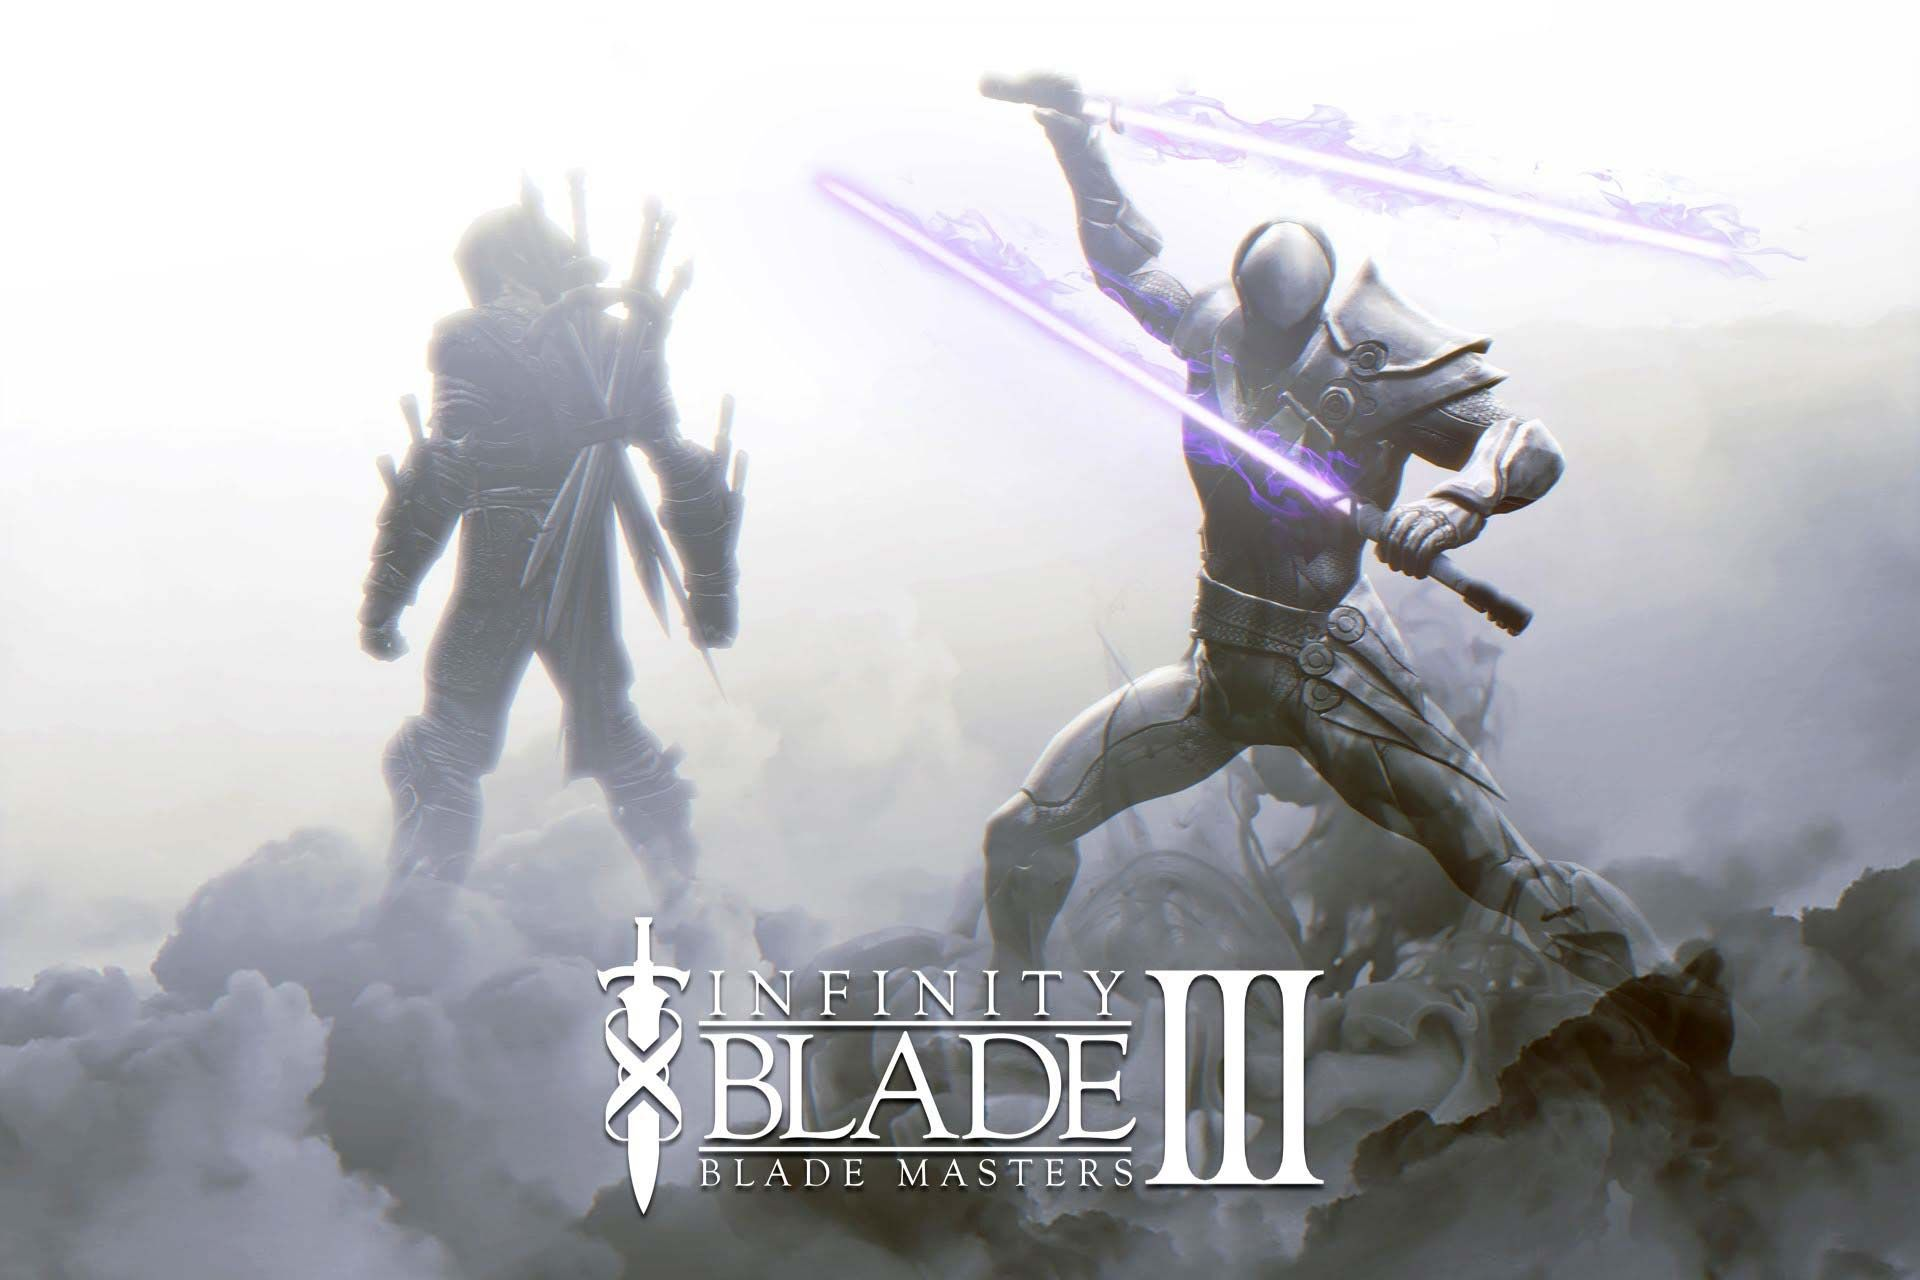 The deathless blade masters from Infinity Blade III The